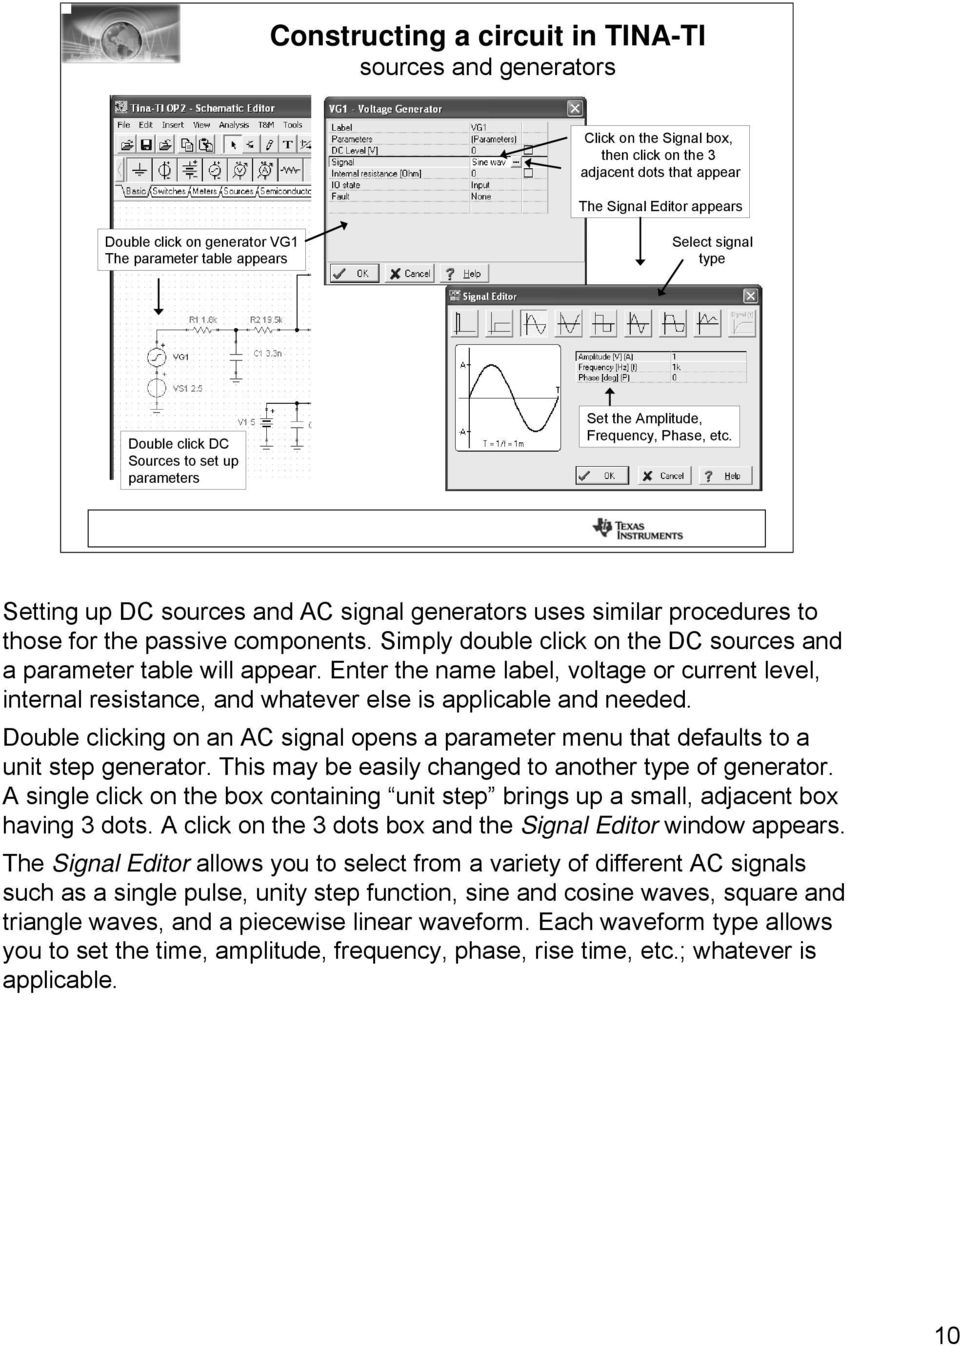 Tina Ti Analog Circuit Simulation Made Easy Thomas Kuehl Senior Acquisition Amplifiercircuit Diagram Setting Up Dc Sources And Ac Signal Generators Uses Similar Procedures To Those For The Passive